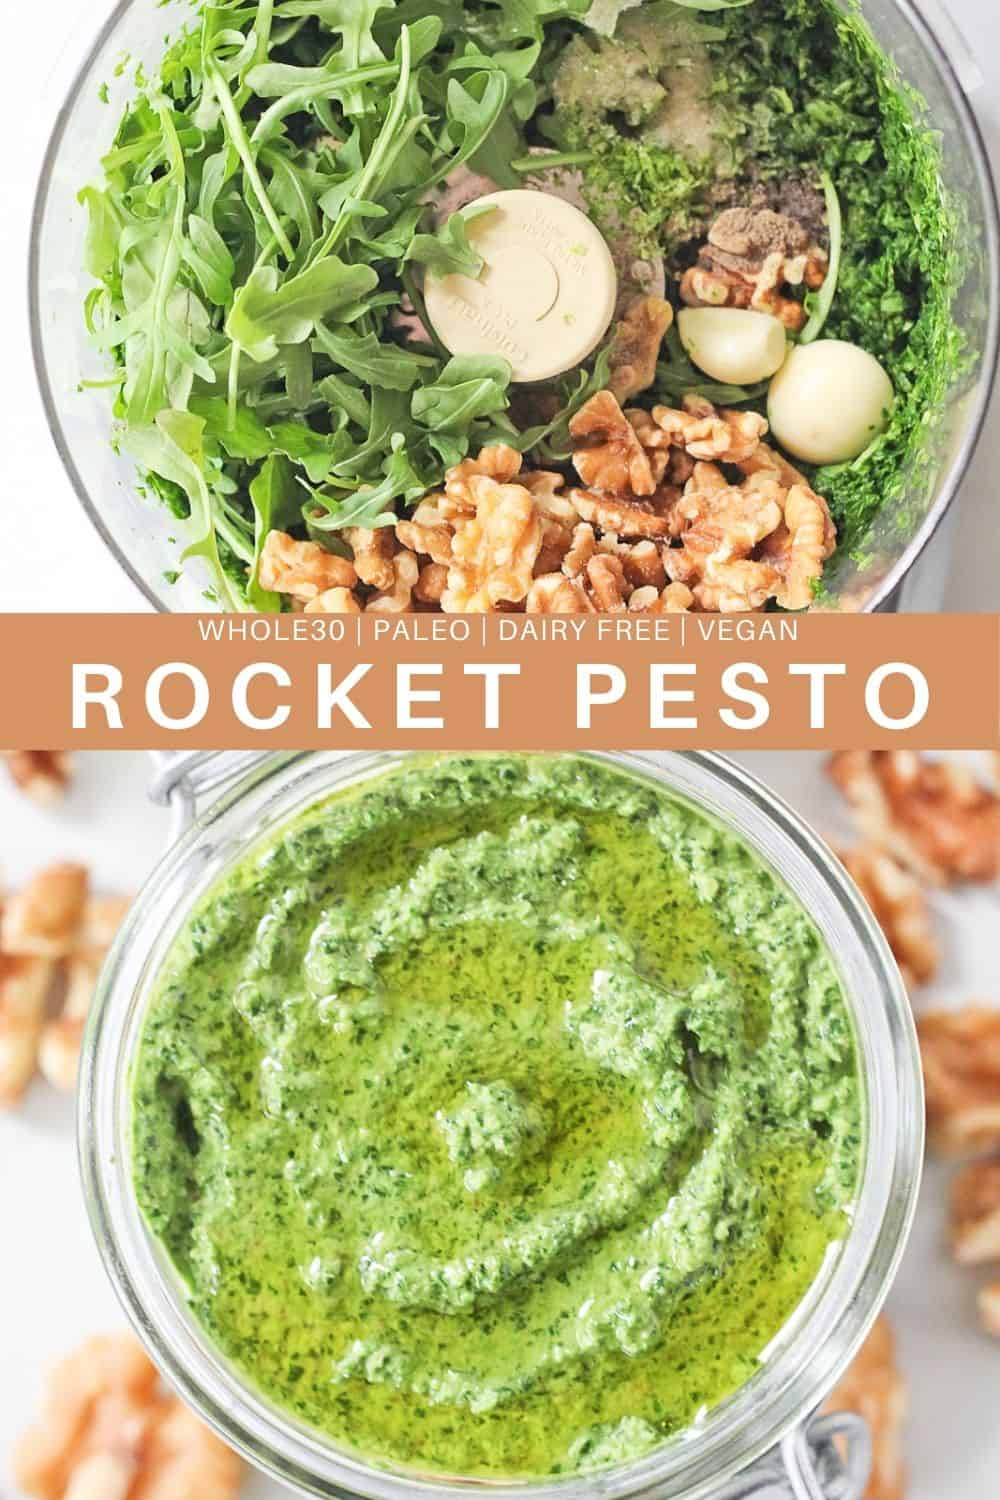 Rocket Pesto in a food processor.